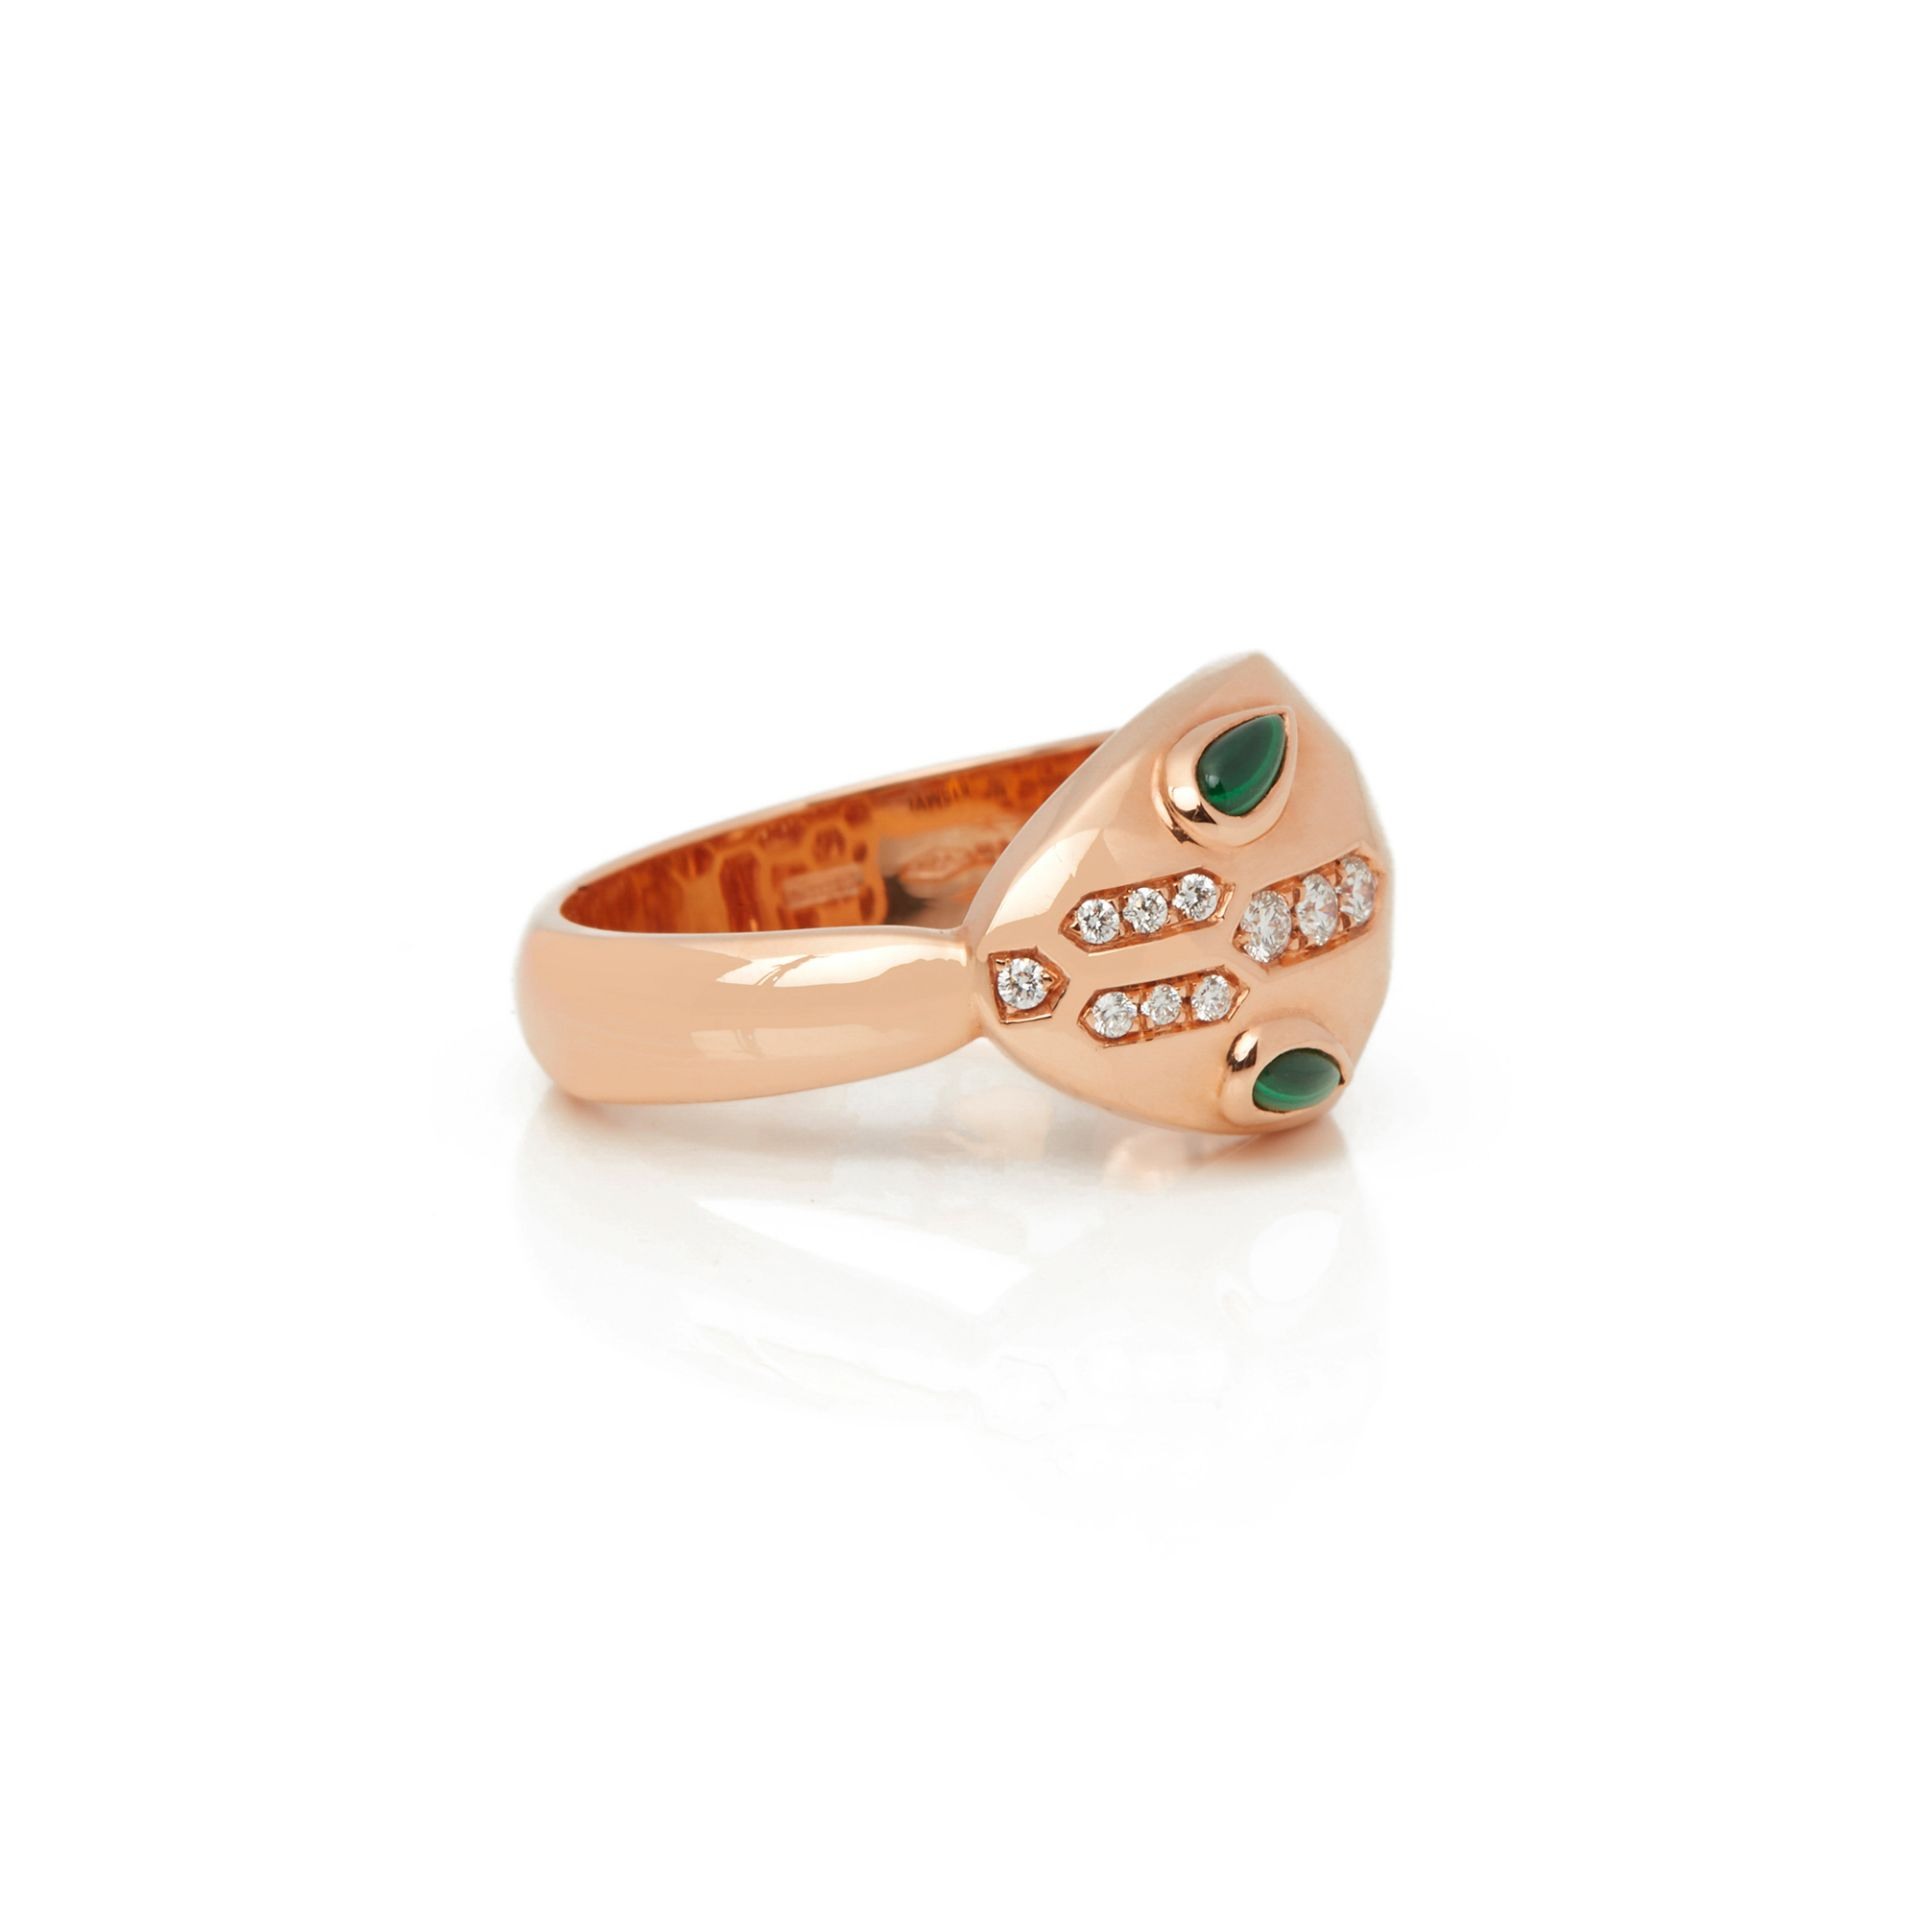 Lot 28 - 18k Rose Gold Diamond & Malachite Serpenti Ring